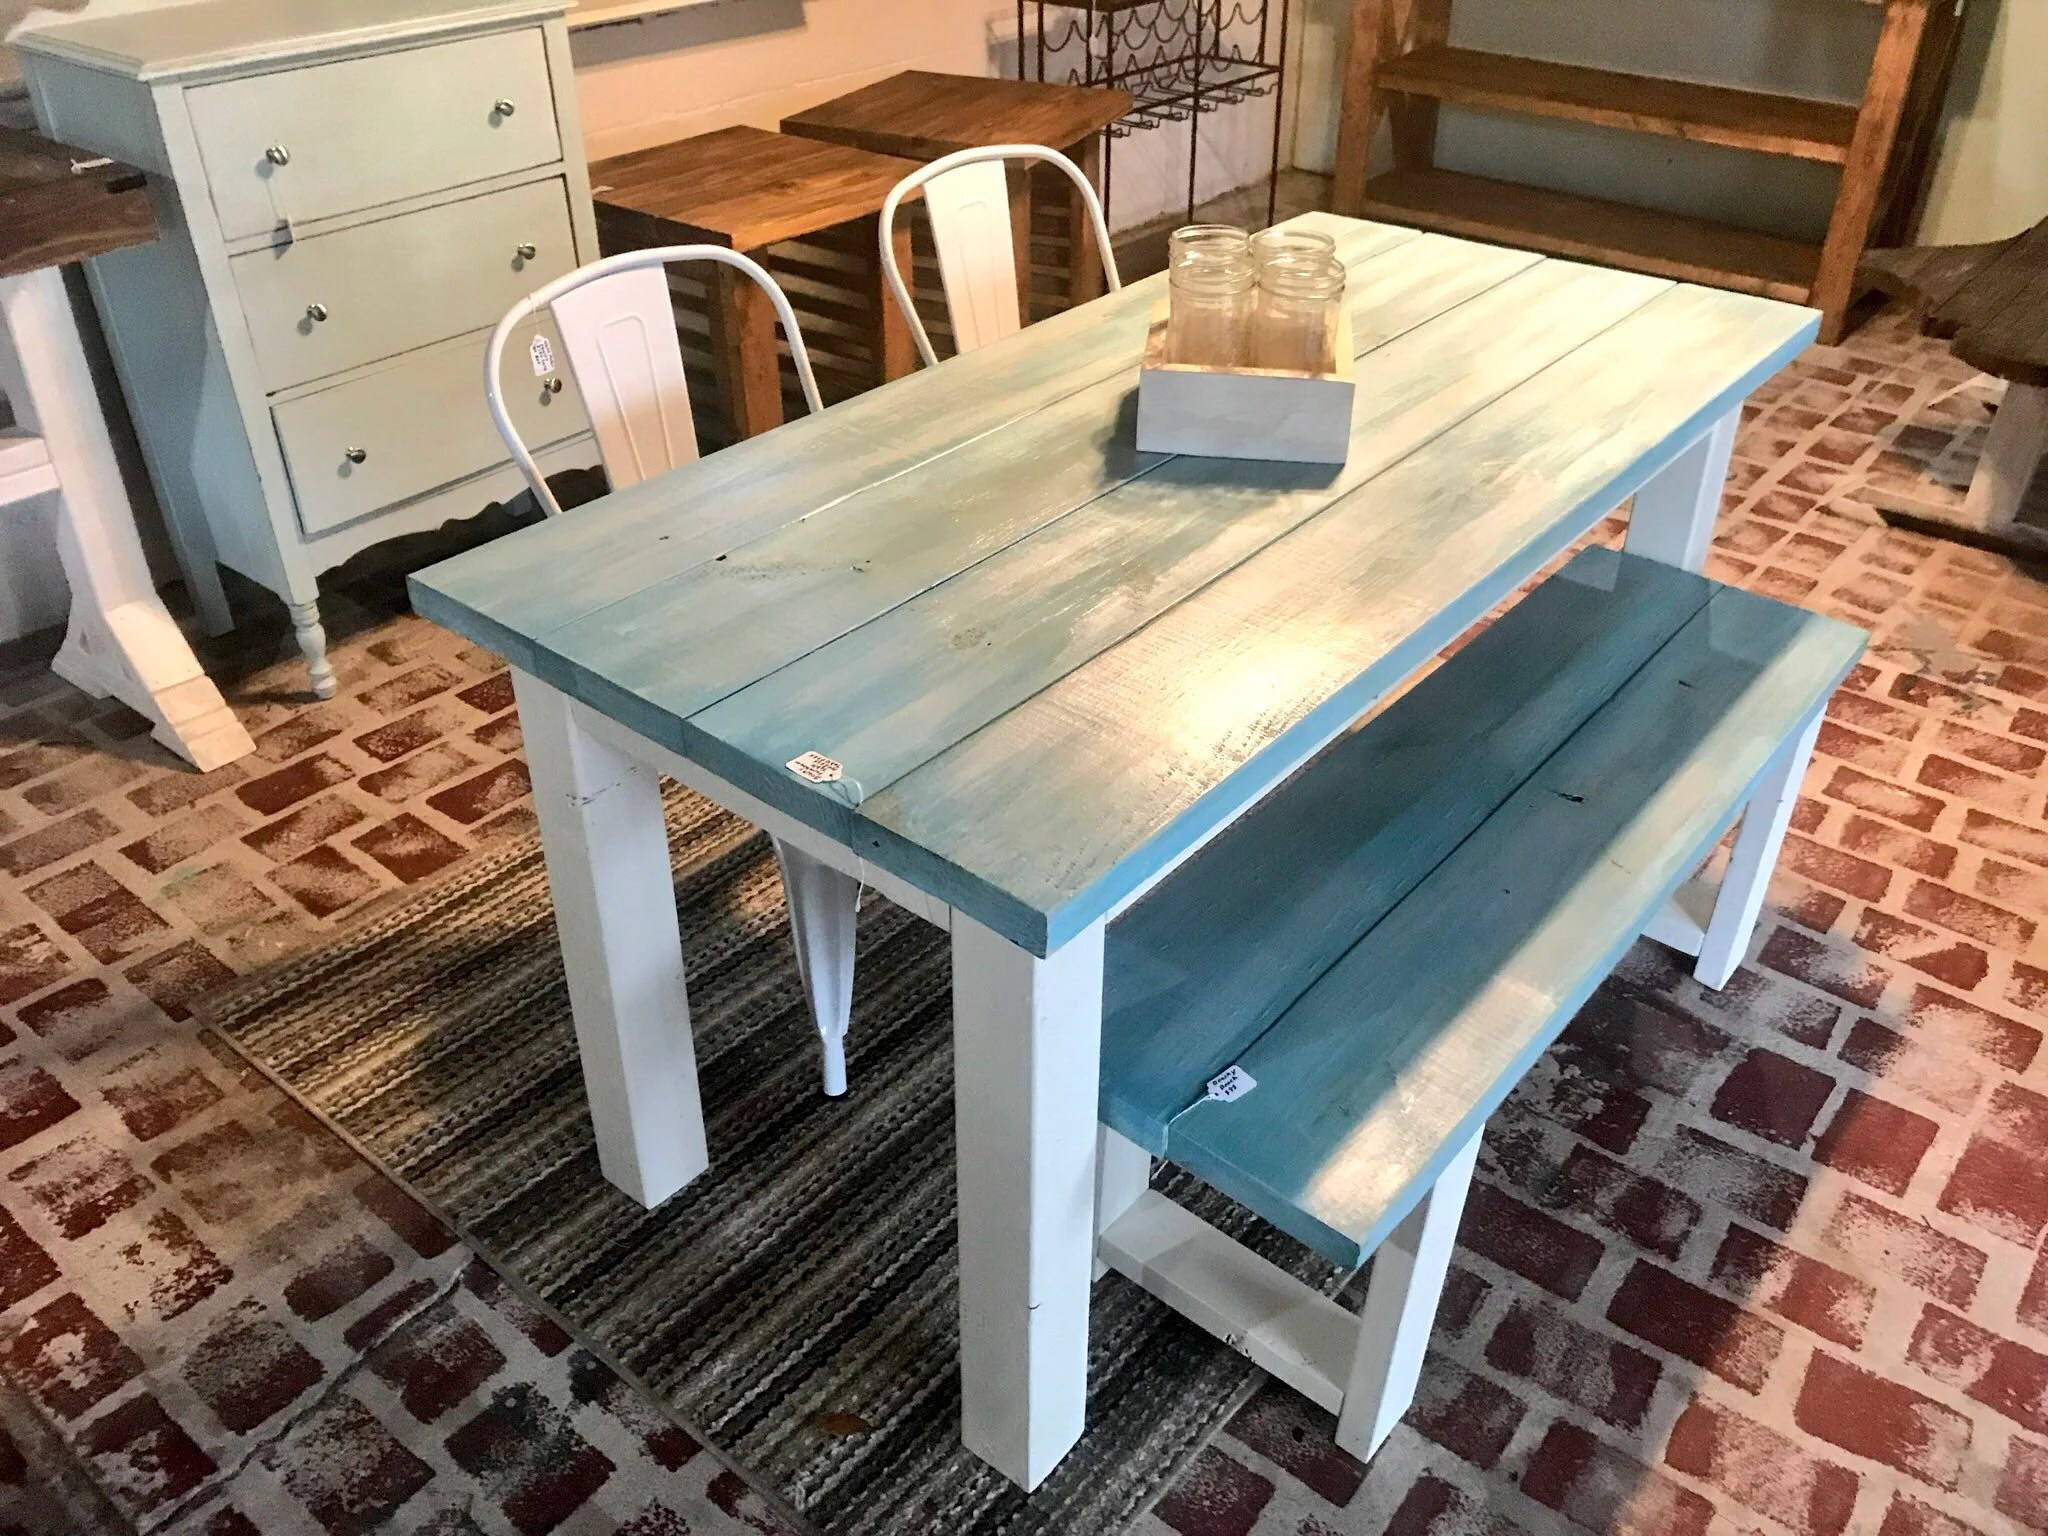 Vintage Aqua Small Farmhouse Table Set With Bench And Metal Chairs Gray And White Wash With White Base 5ft Farmhouse Table Dining Set